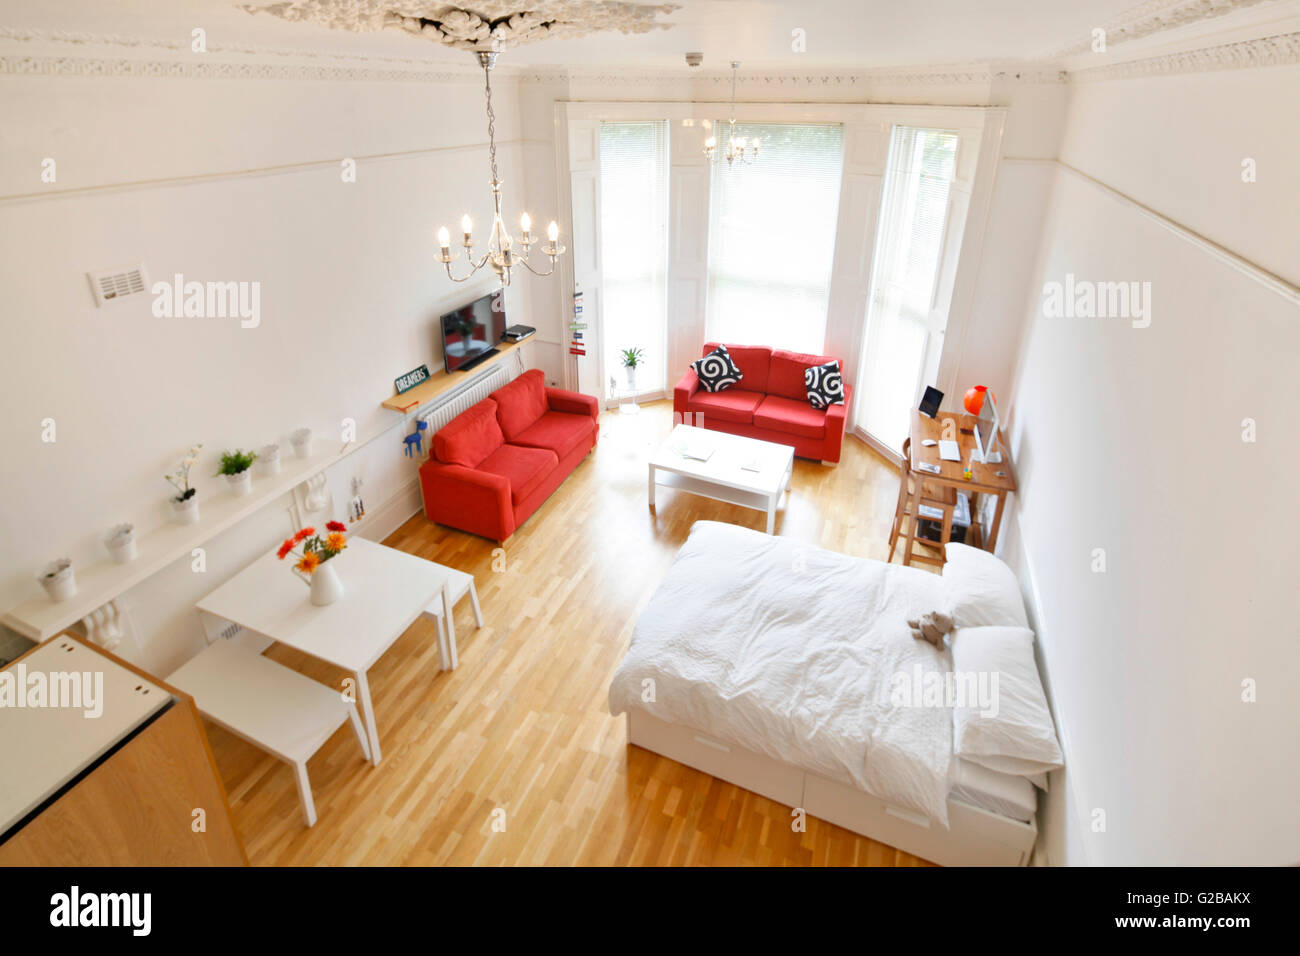 Pembridge Square, Notting Hill. View of a spacious, contemporary studio apartment with a bed with white linen and - Stock Image